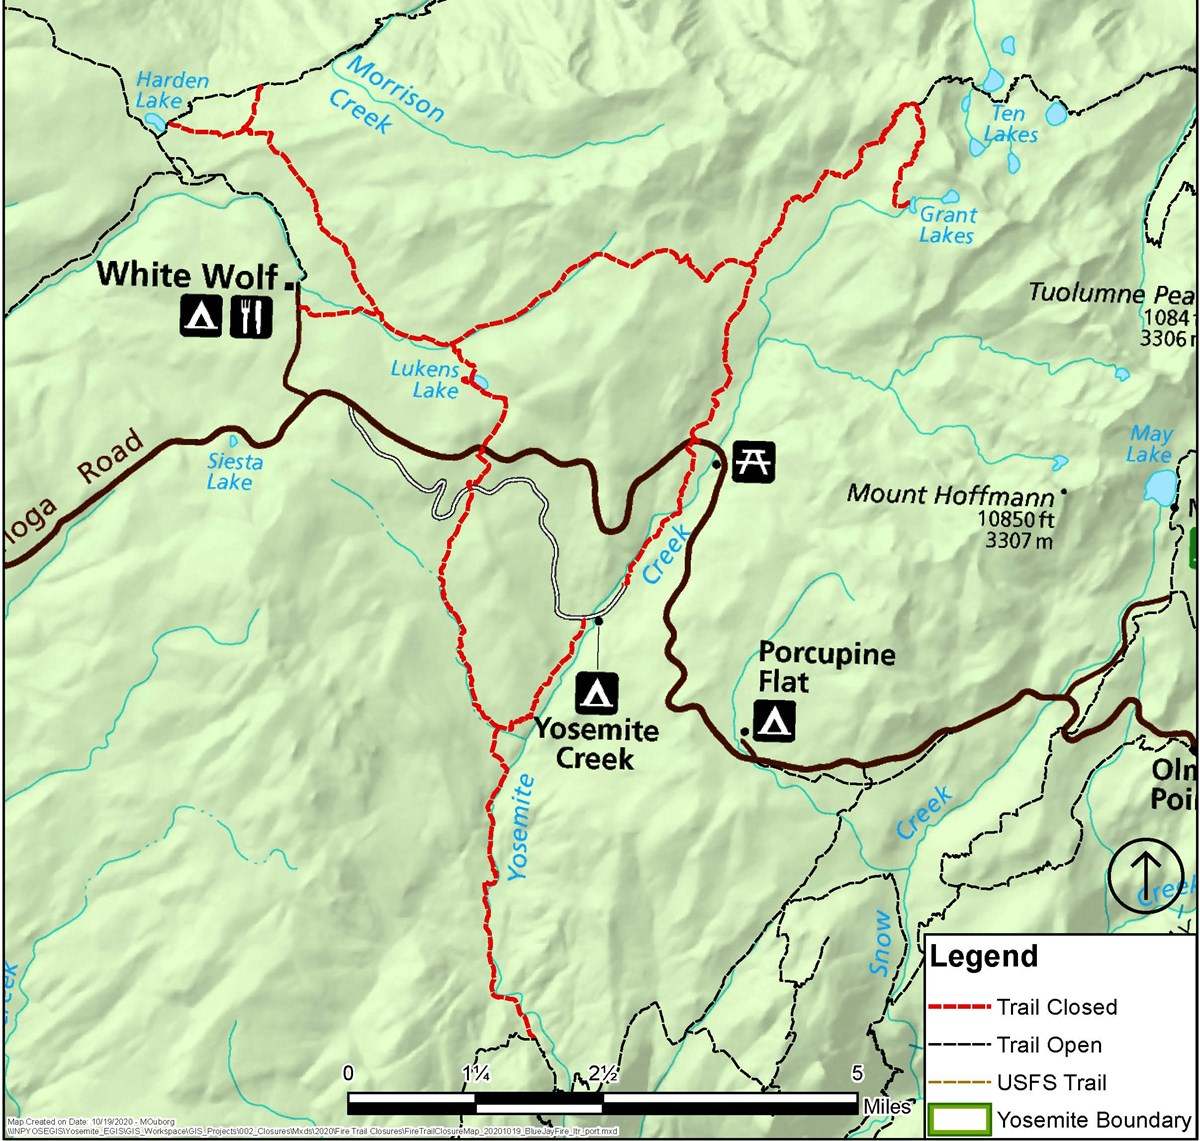 Map showing trail closure along Yosemite Creek as well as Lukens to Ten Lakes junction, closed